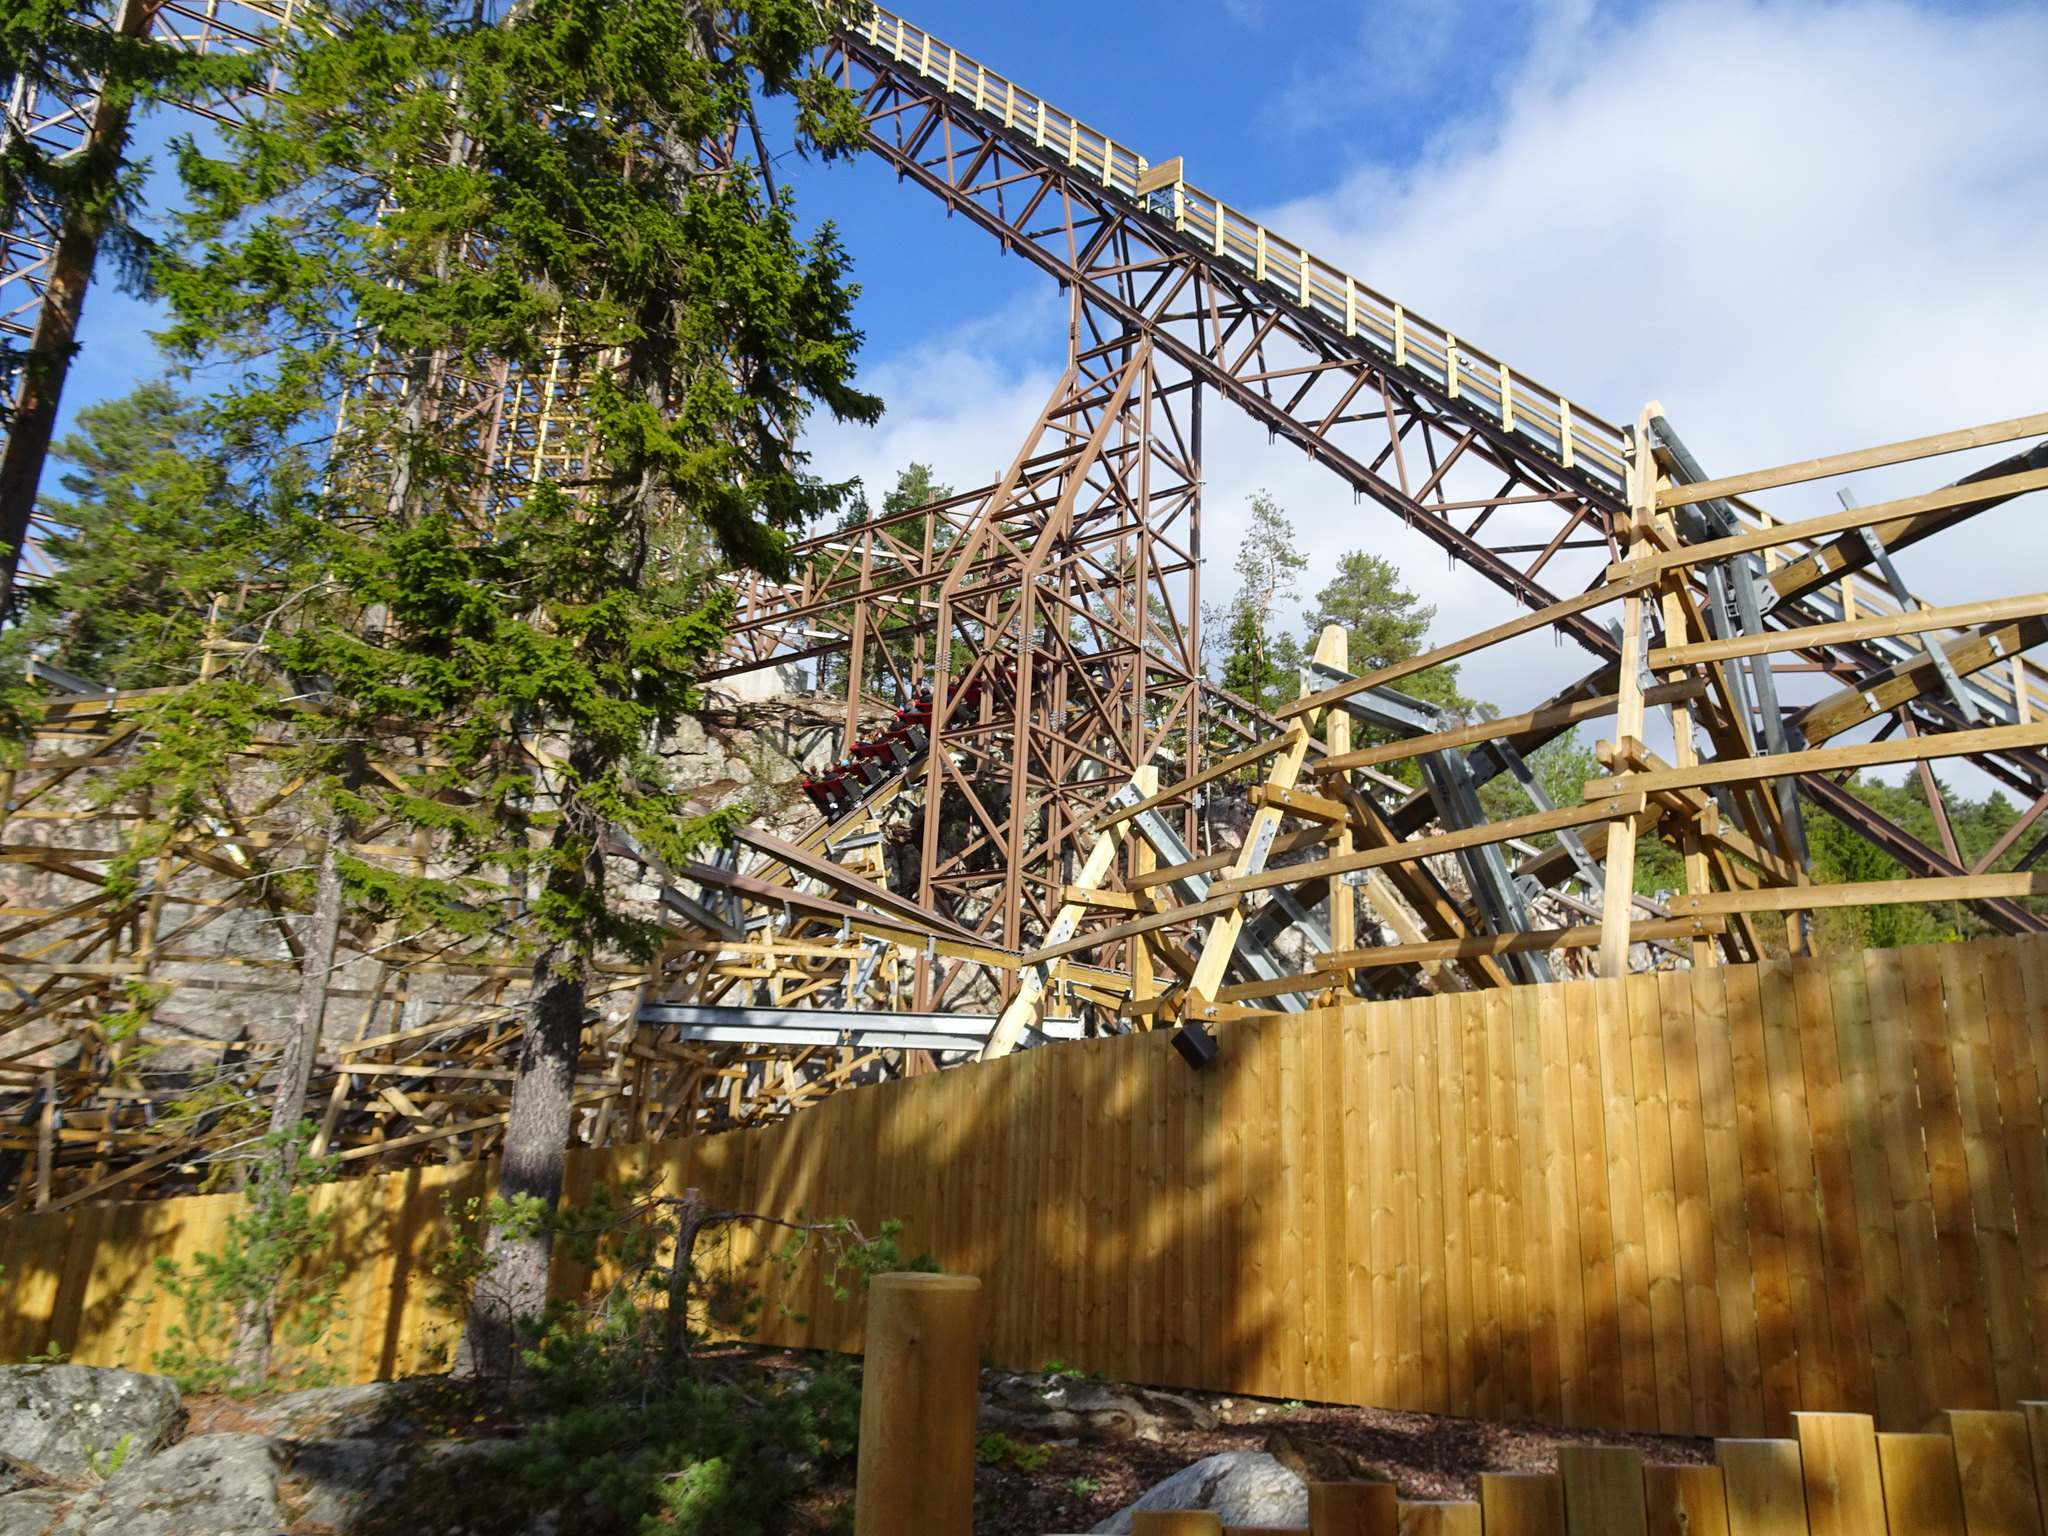 wildfire4 Wildfire   Fastest Wooden Coaster in Europe